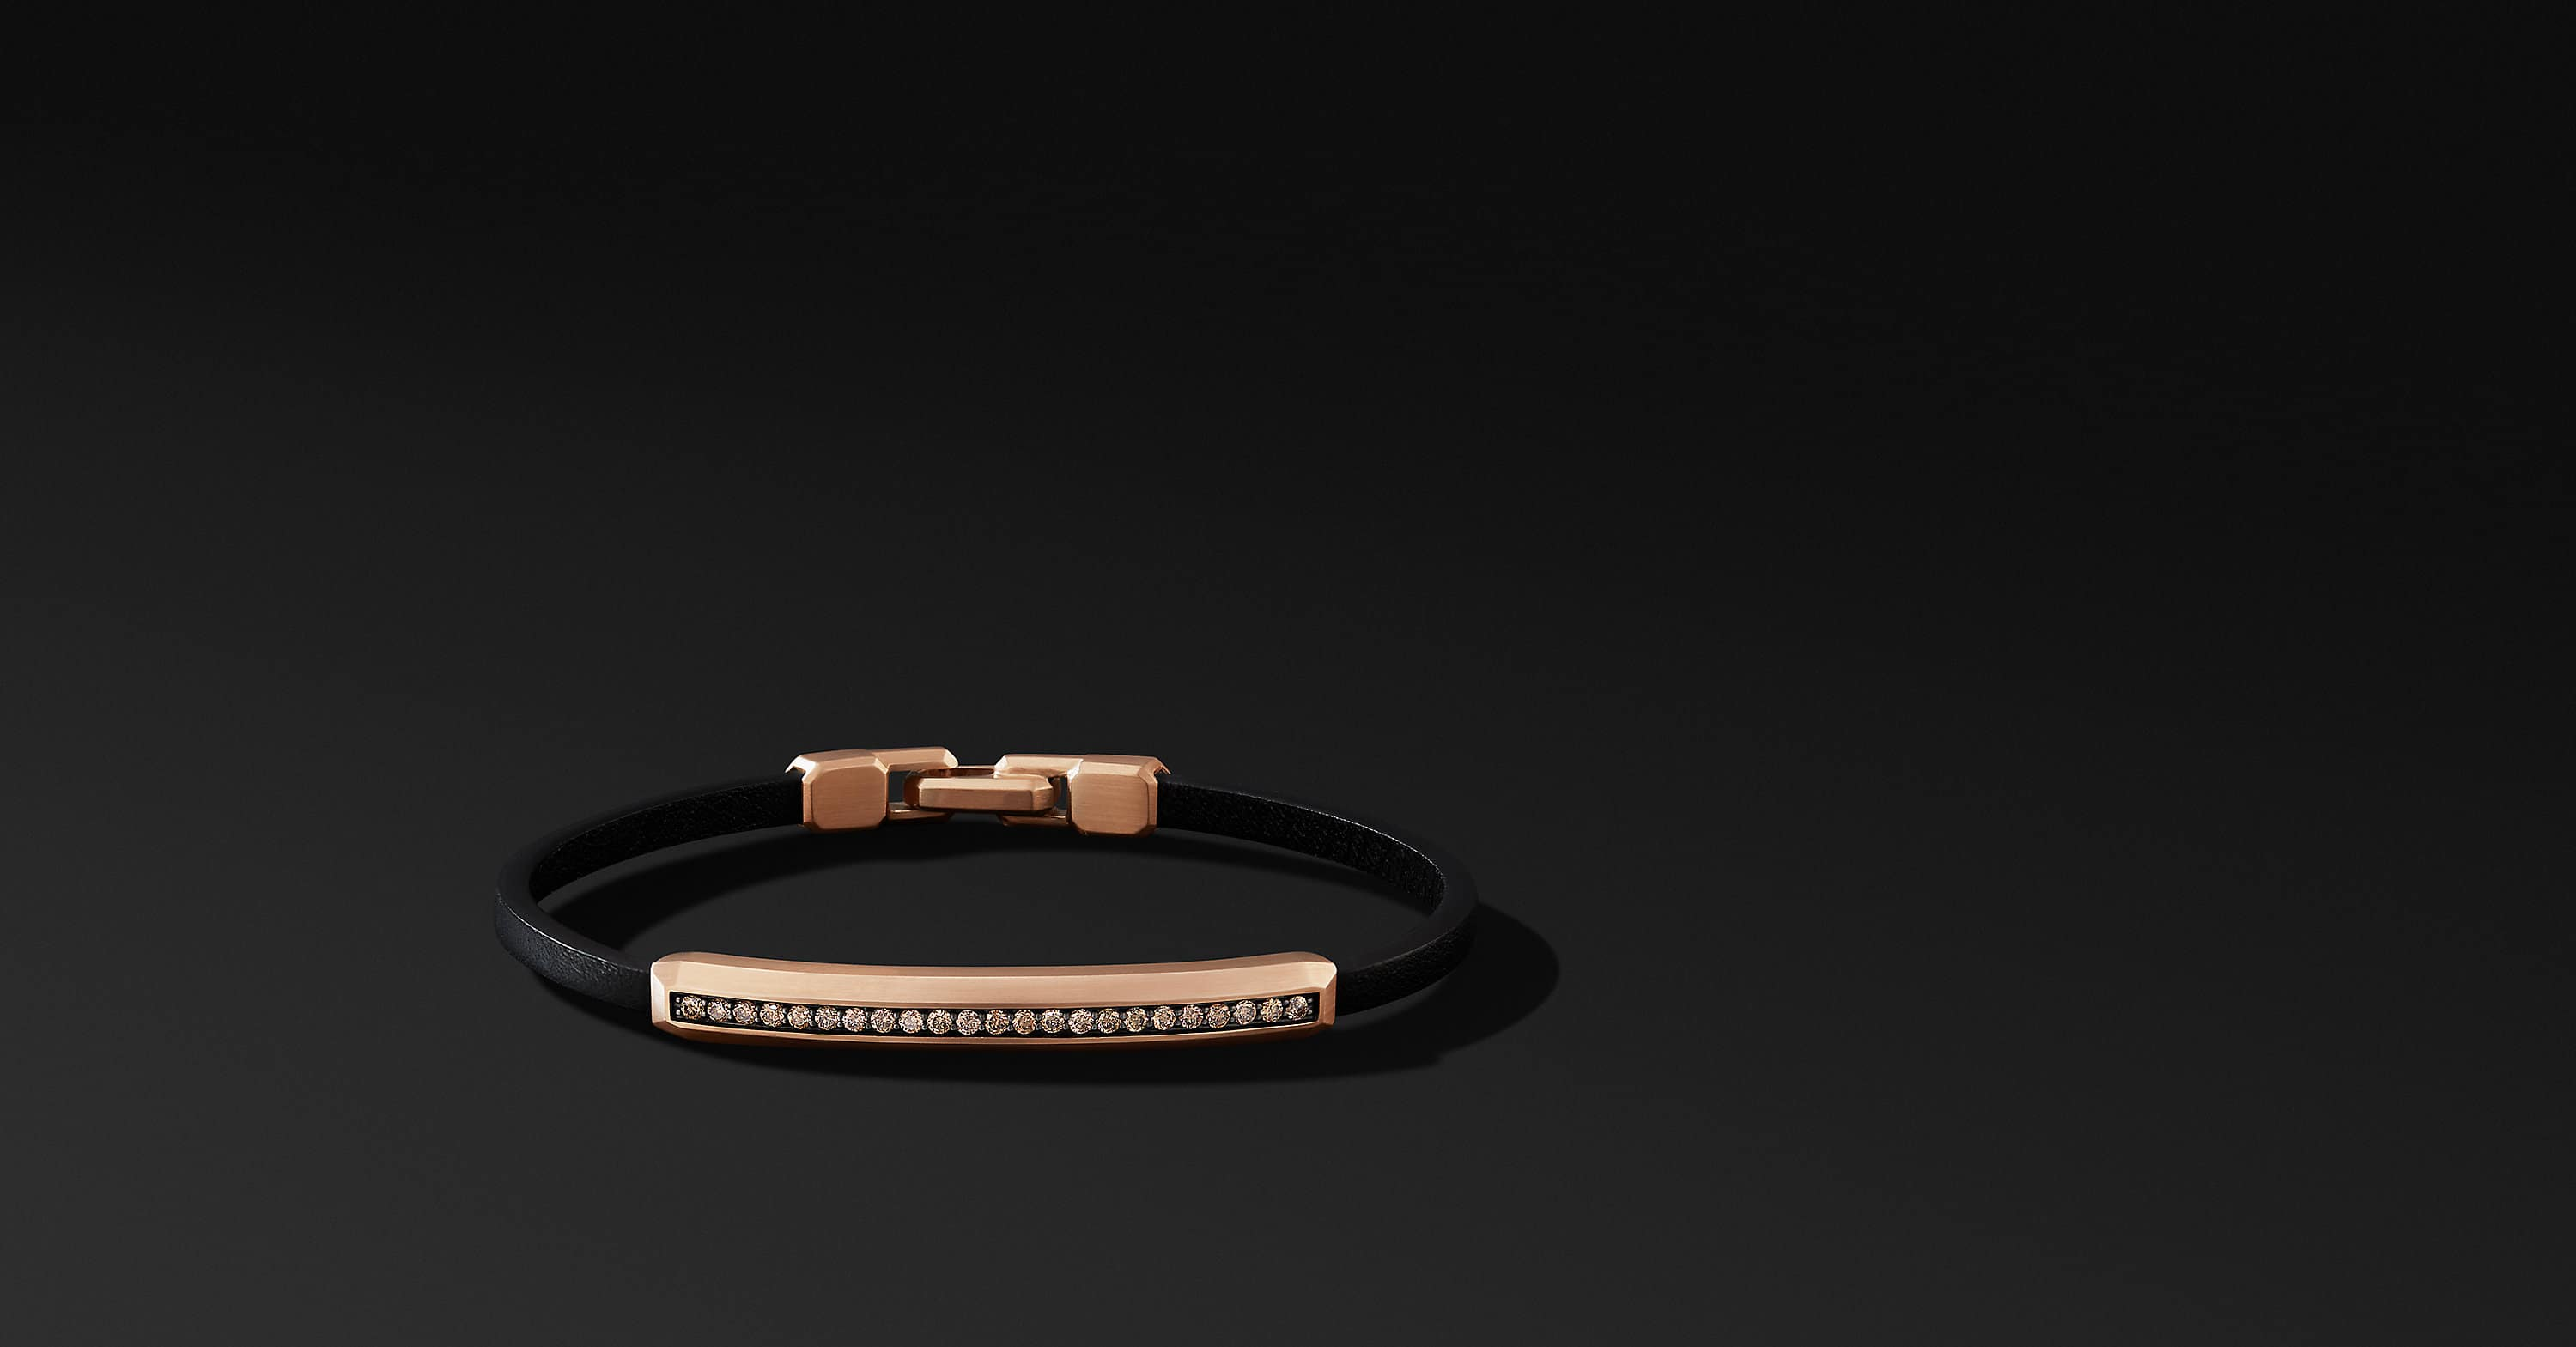 Streamline Leather Bar ID Bracelet with 18K Rose Gold